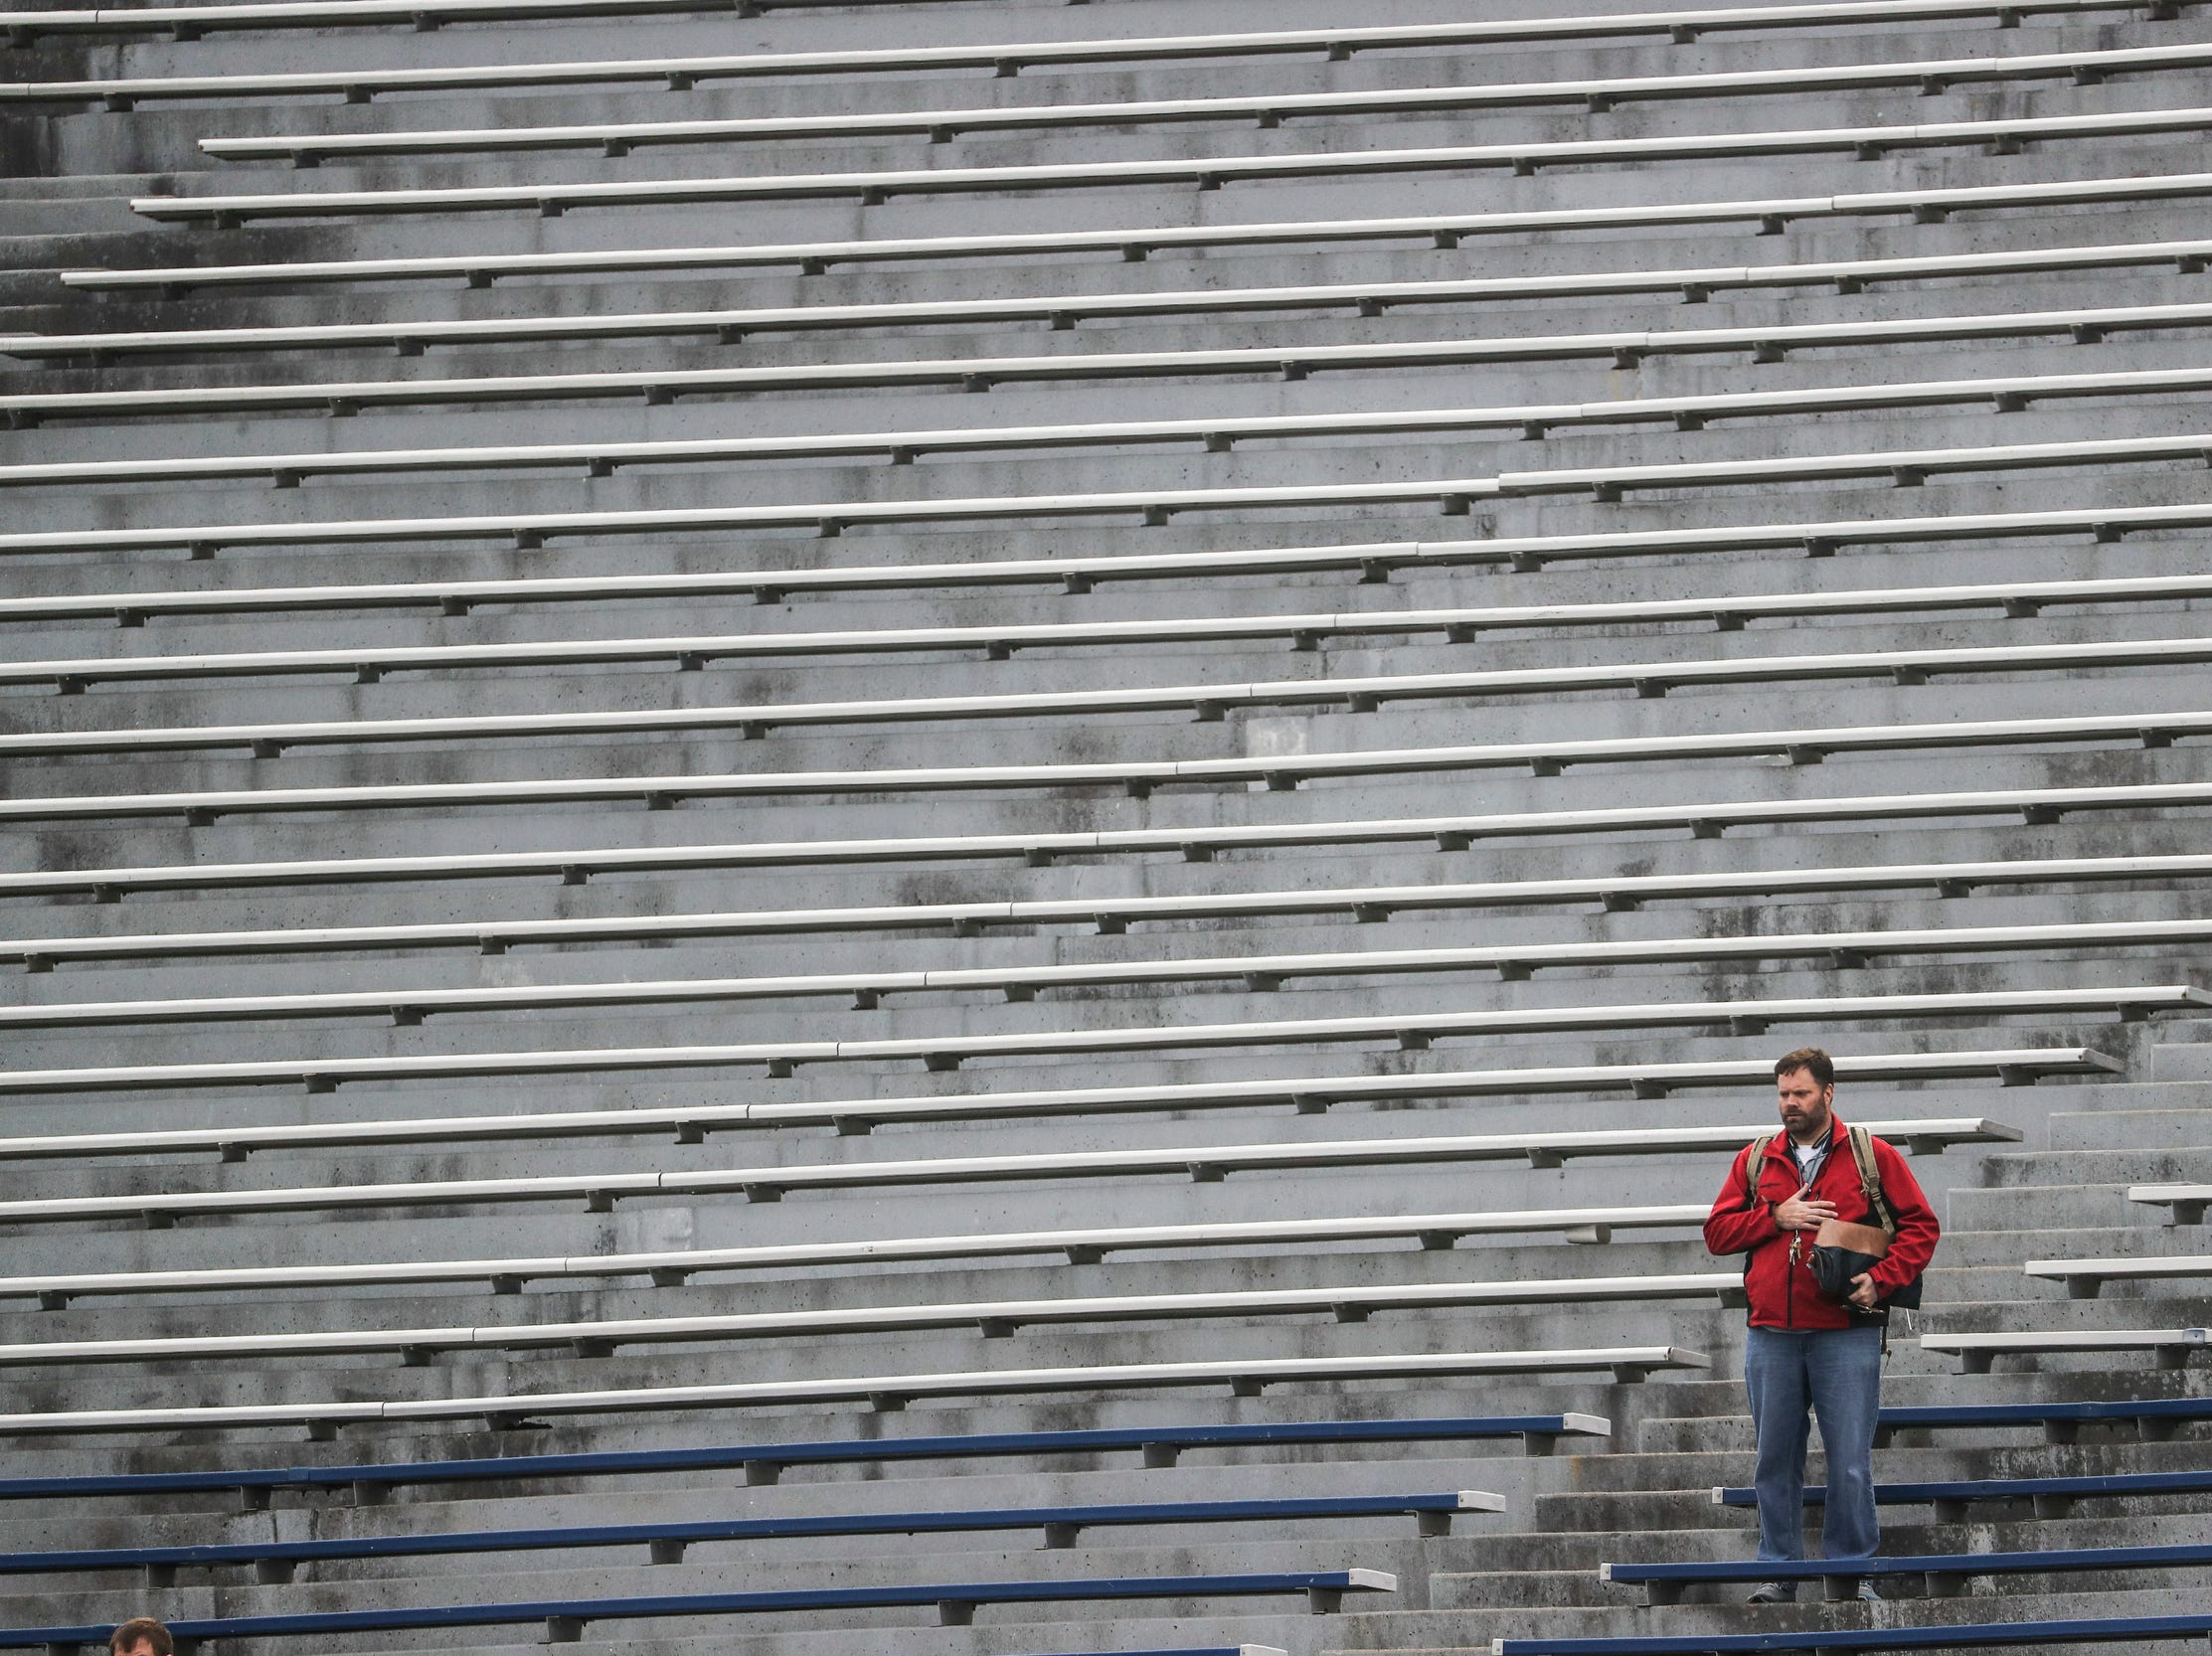 March 02, 2019 - A fan is seen during Saturday's game against the San Diego Fleet.